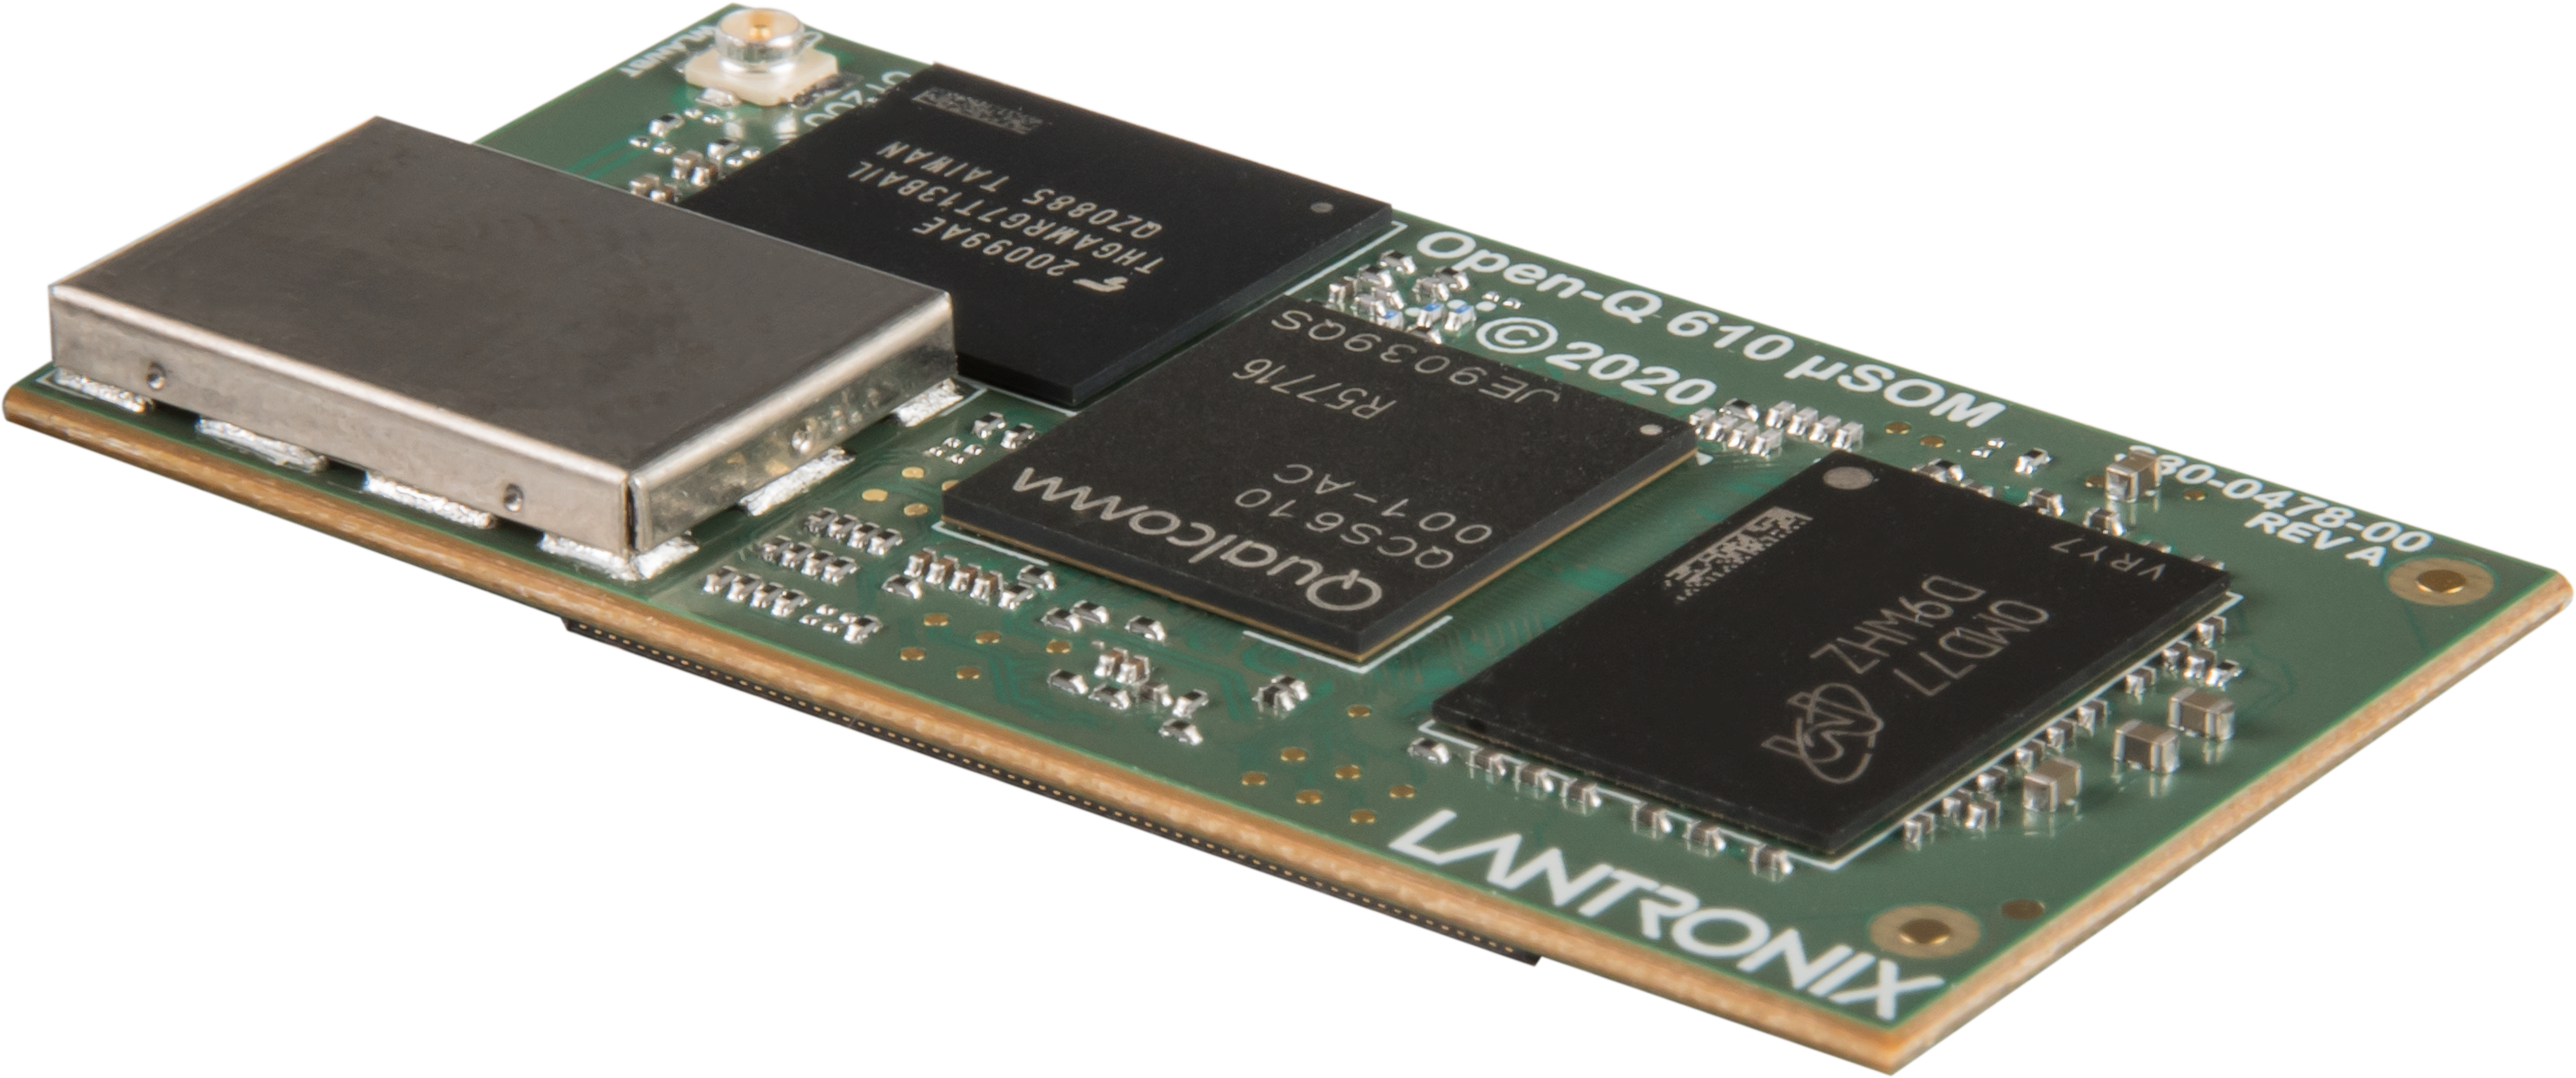 Lantronix Launches Open-Q™ 610 μSOM and Open-Q 610 Development Kit